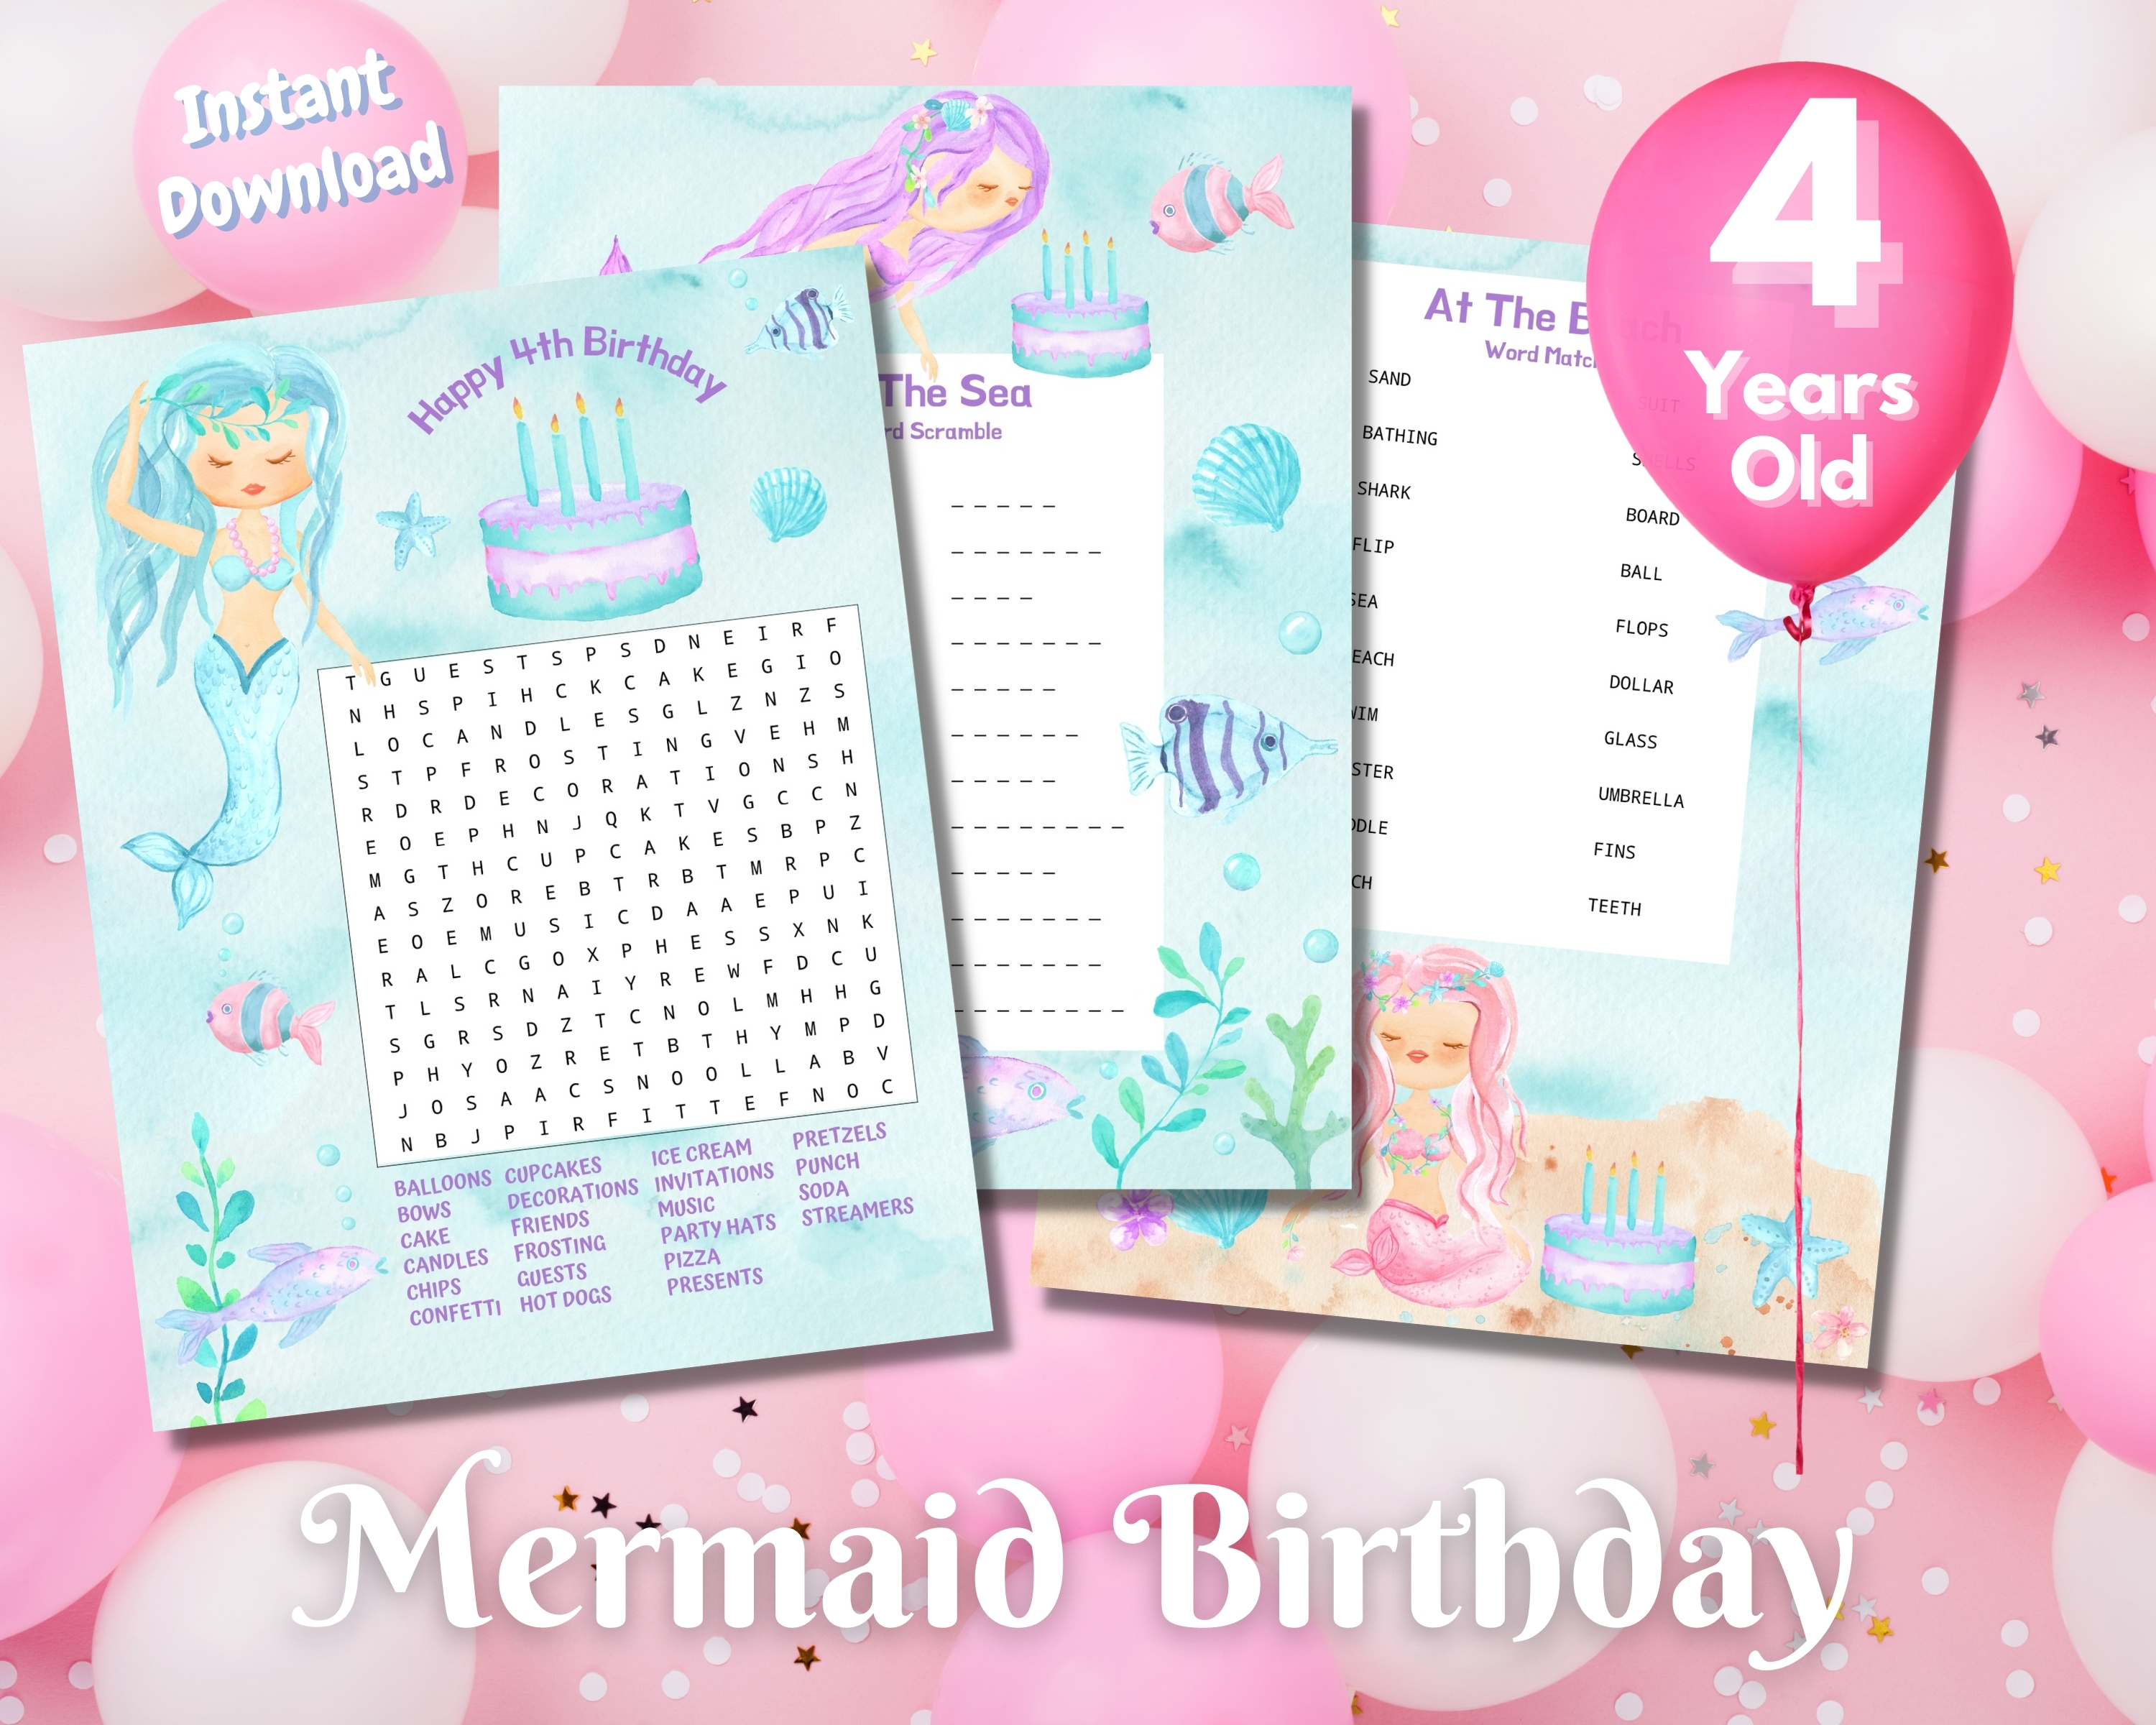 Fourth Mermaid Birthday Word Puzzles - Light Complexion